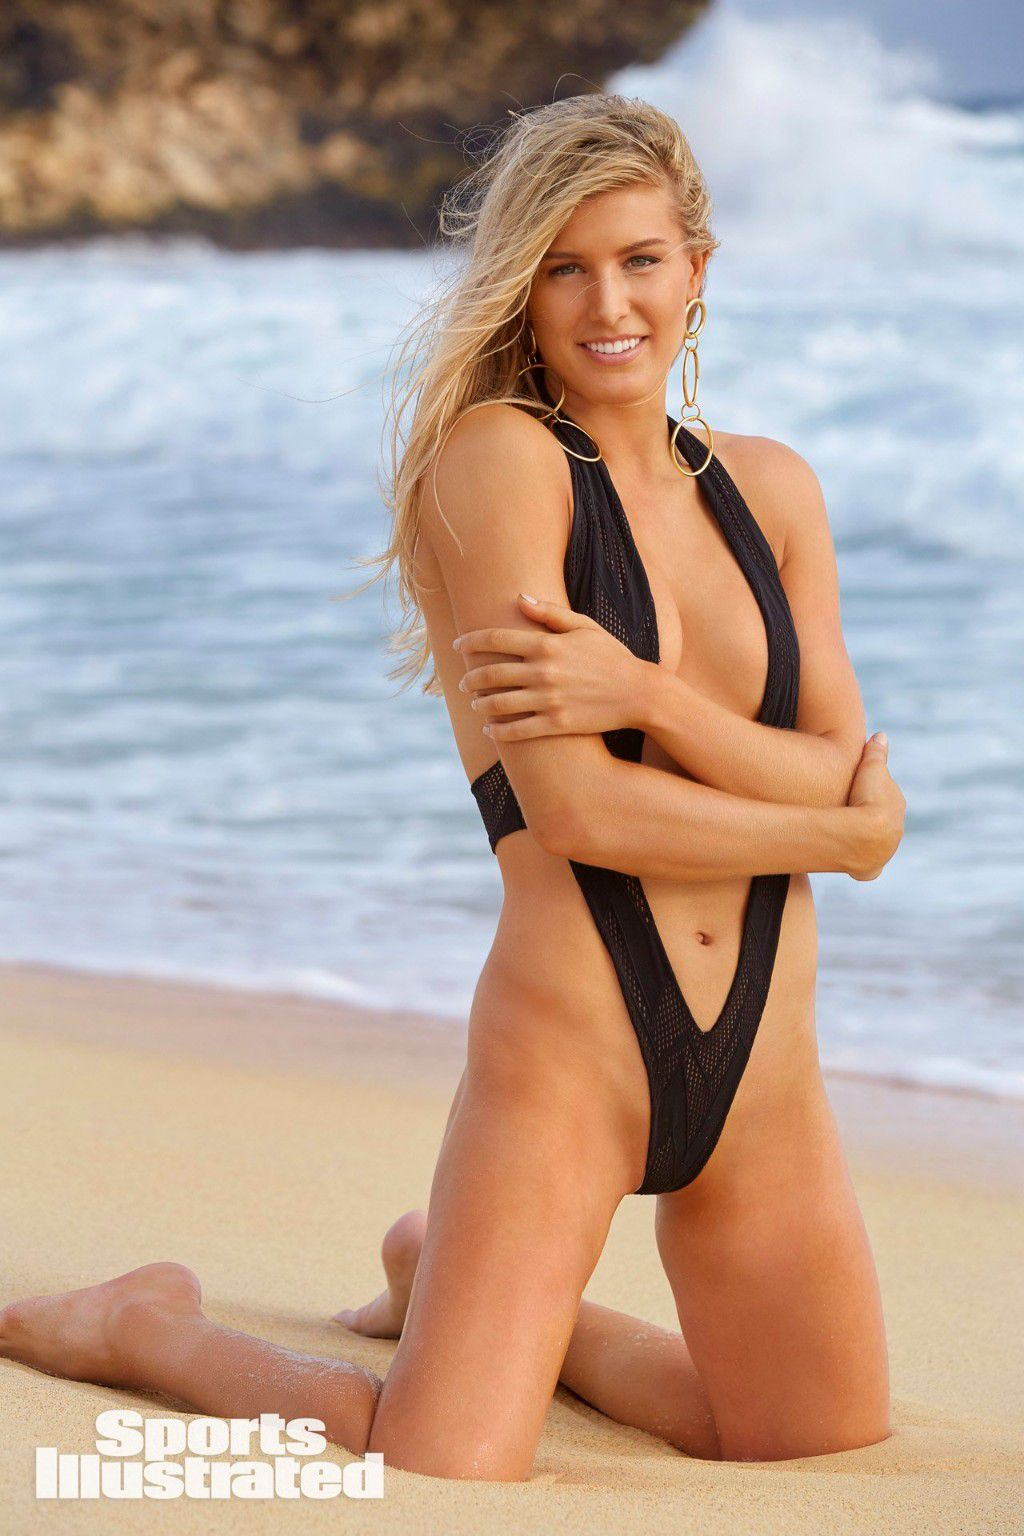 eugenie-bouchard-super-sexy-in-sports-illustrated-swimsuit-issue-2018-32